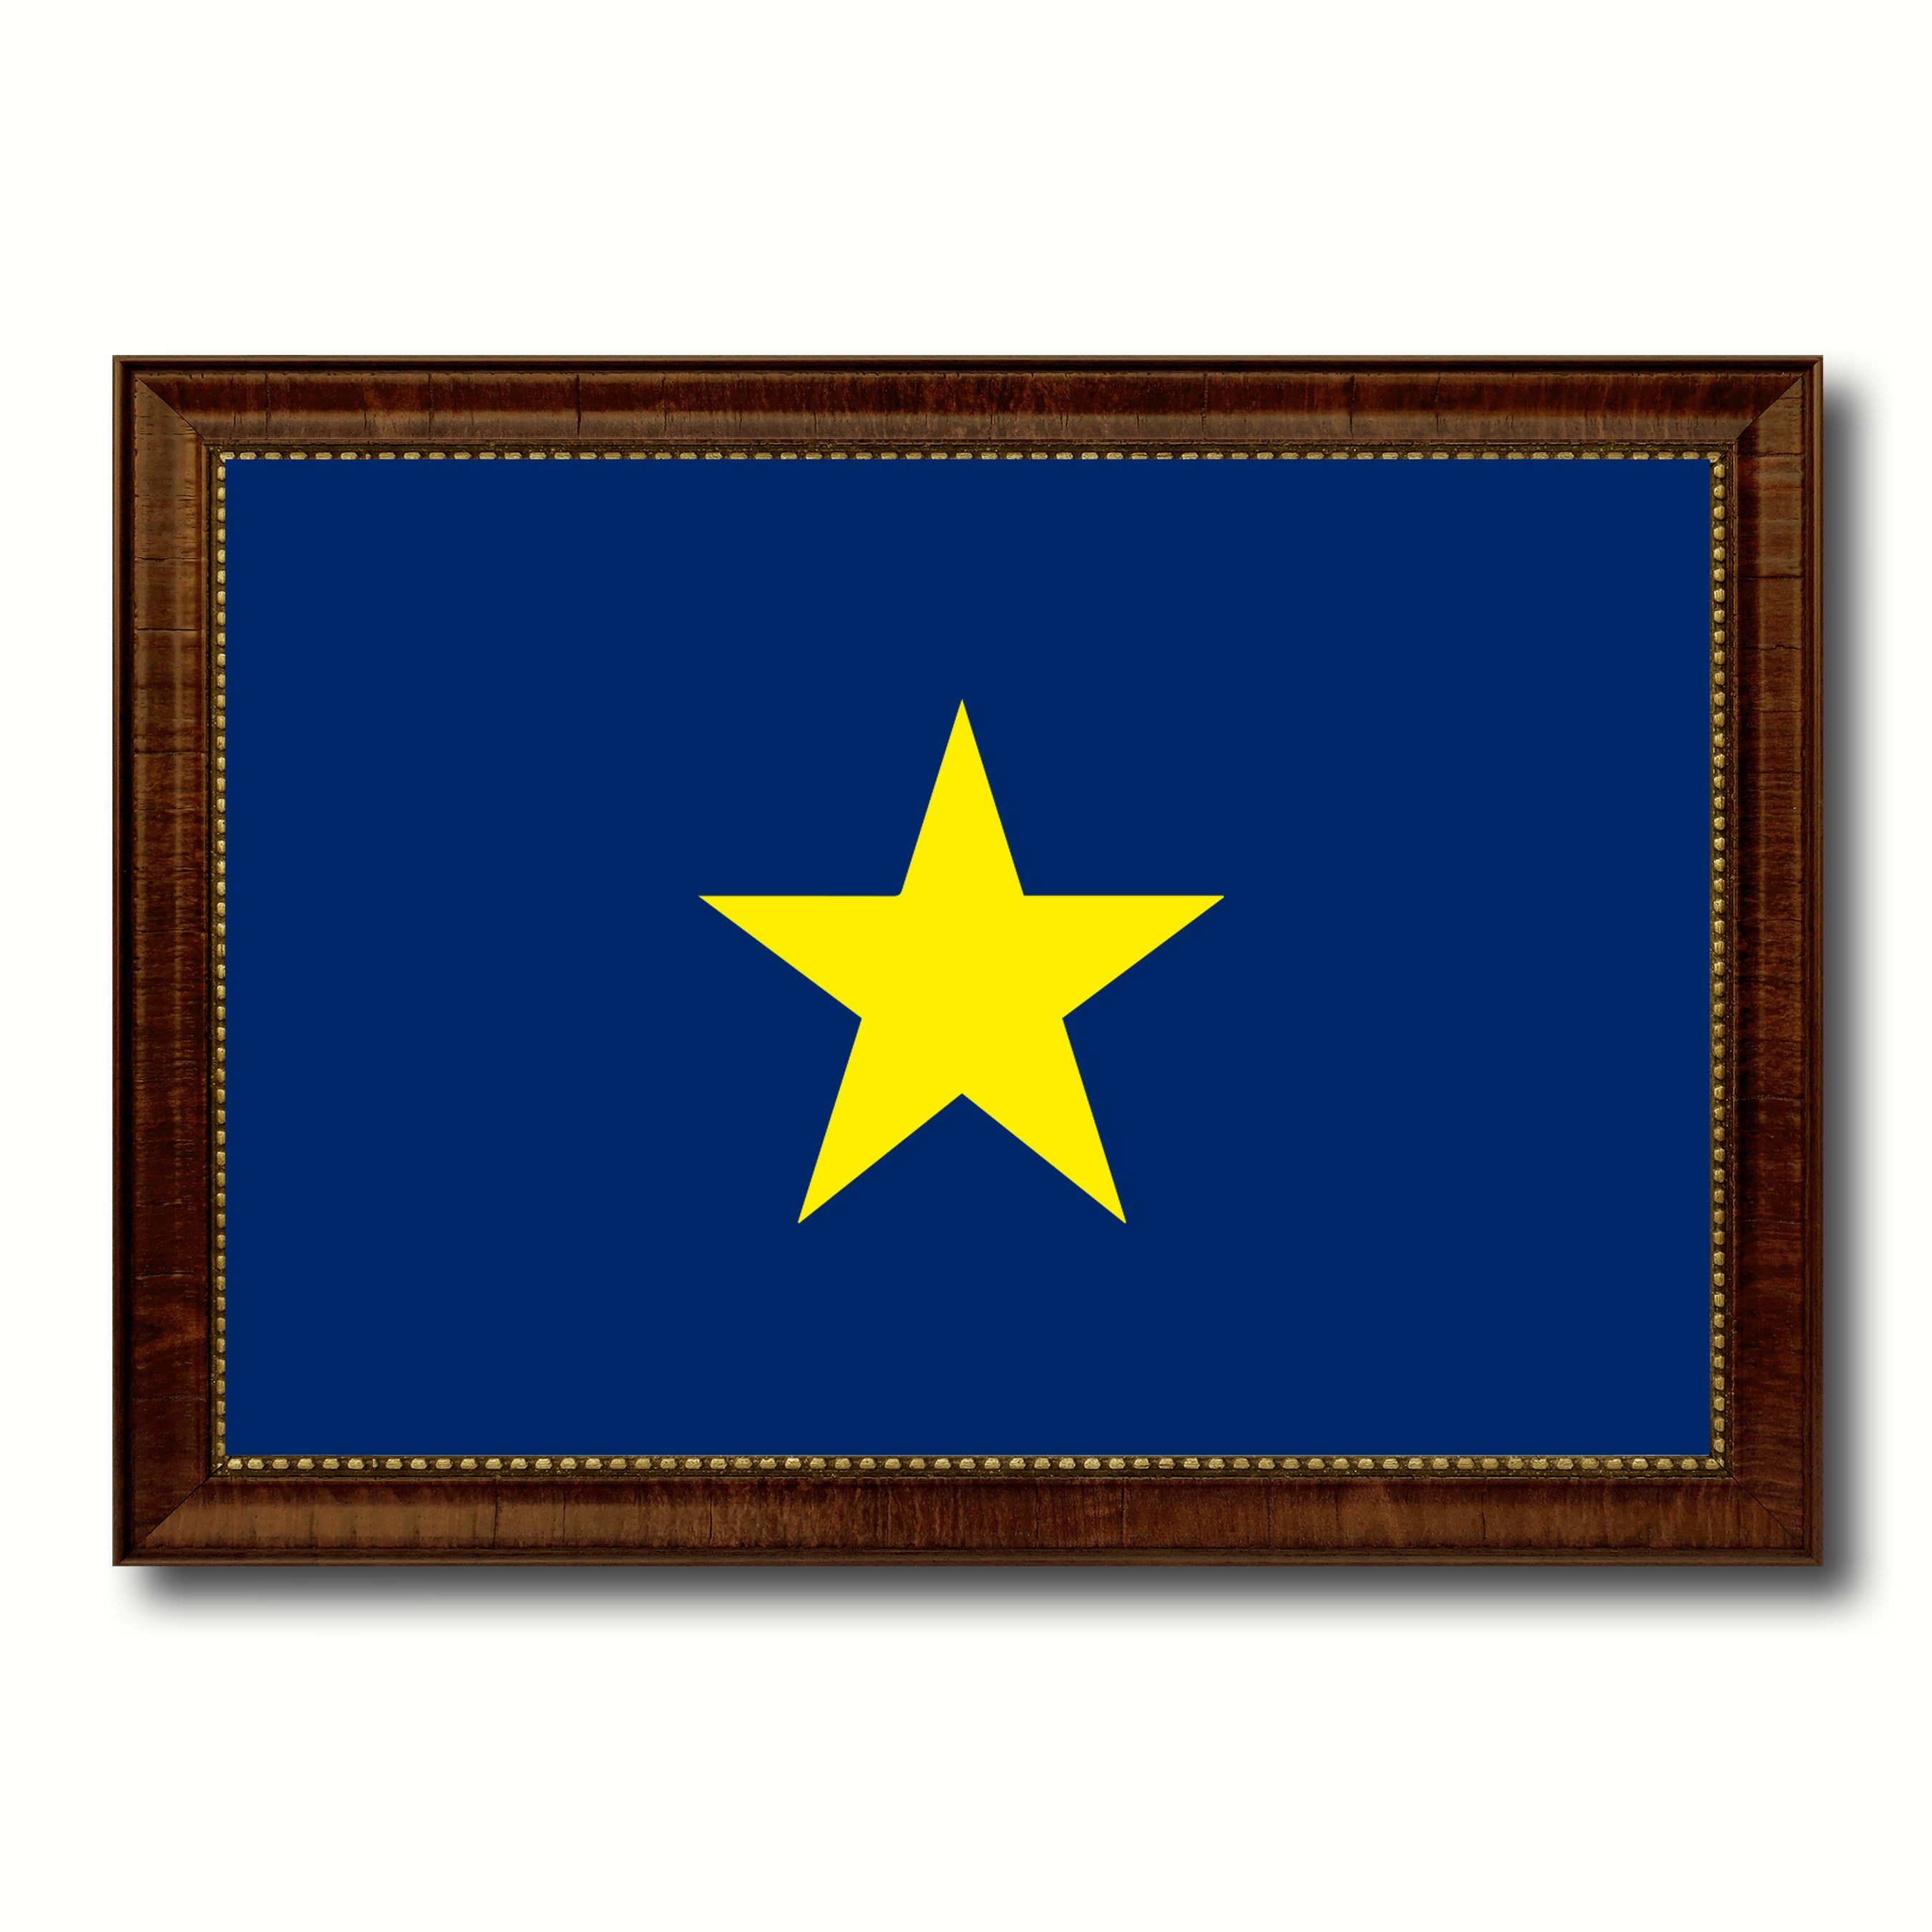 Burnet's 1st Texas Republic 1836-1839 Military Flag Canvas Print with Brown Picture Frame Home Decor Wall Art Gift Ideas